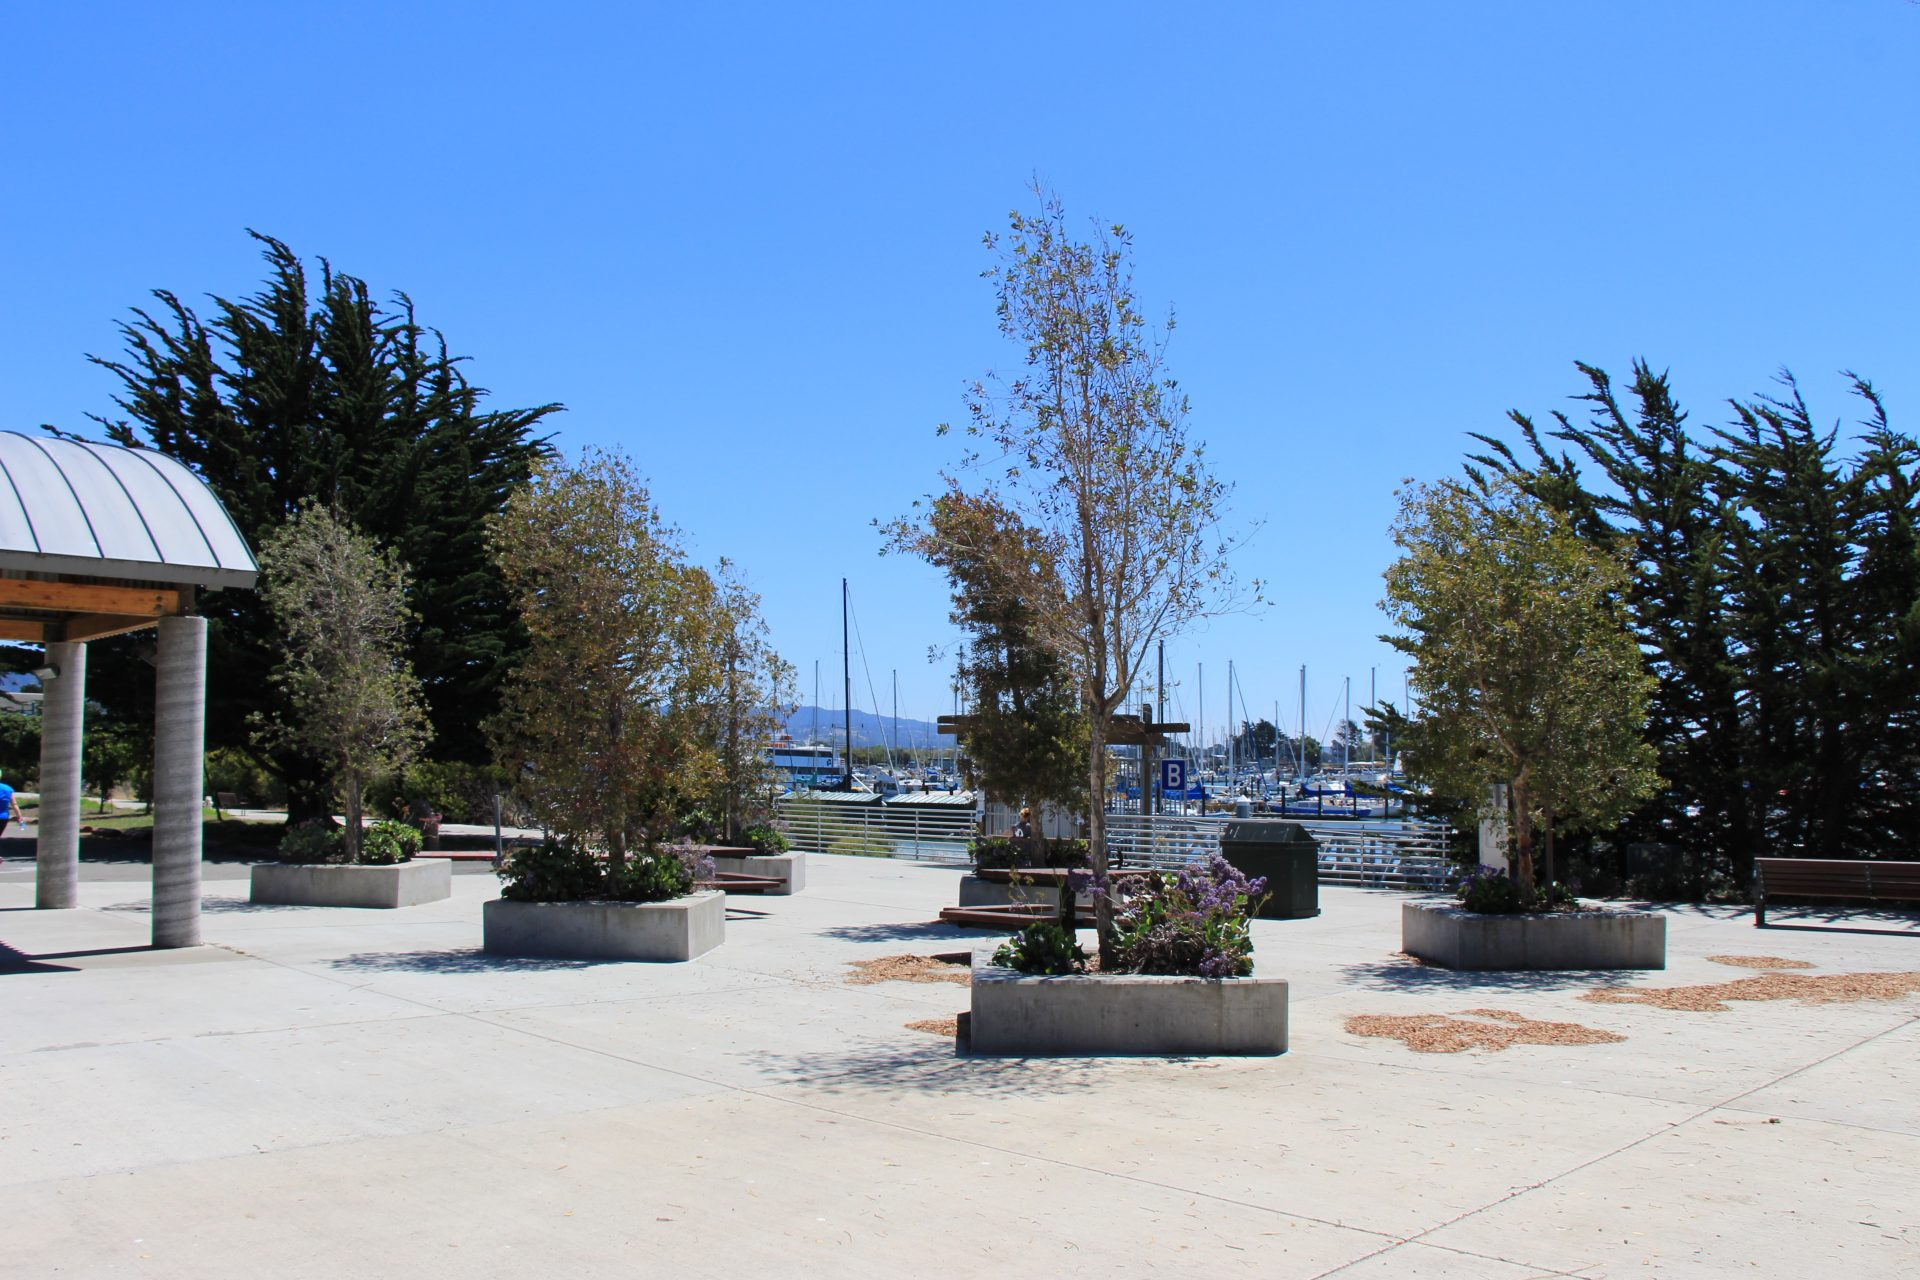 paved plaza with trees set in raised concrete planter areas